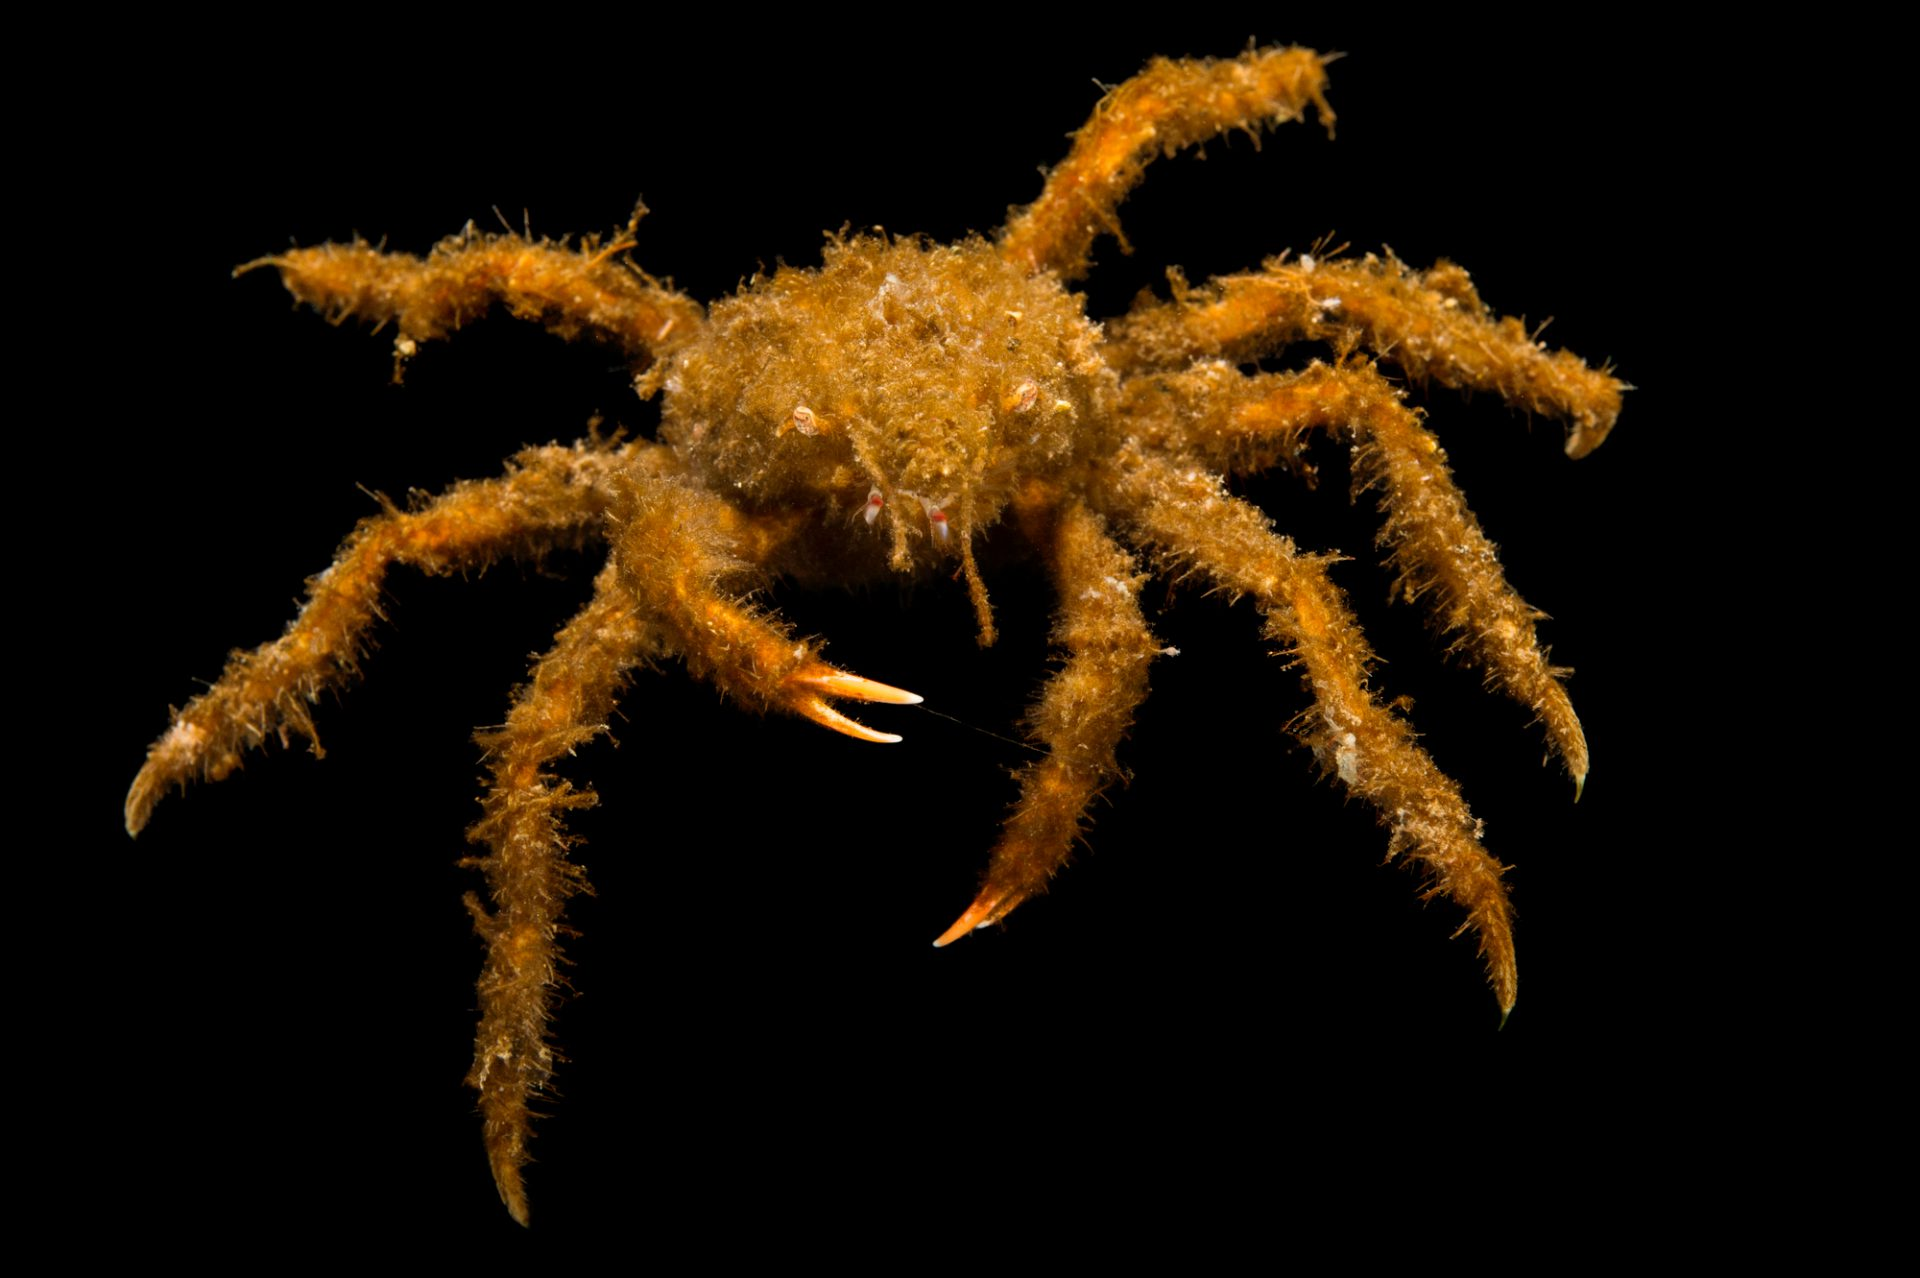 Photo: A decorator crab (Oregonia gracilis) at the Alaska SeaLife Center.